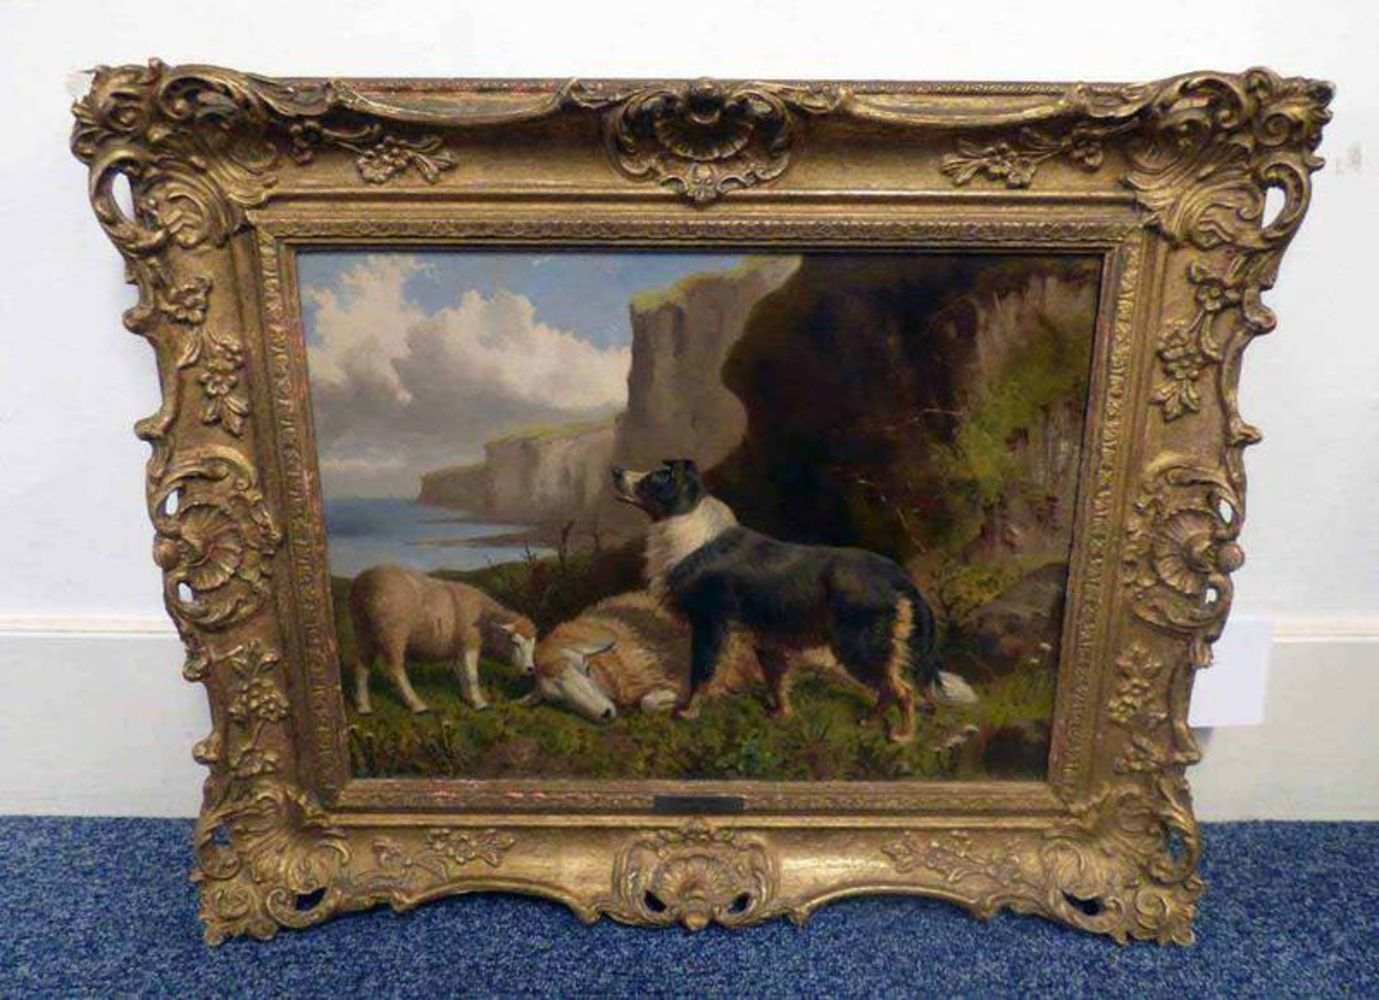 Sale of Paintings, Carpets, Light Fittings,etc. - Remote Bidding Only